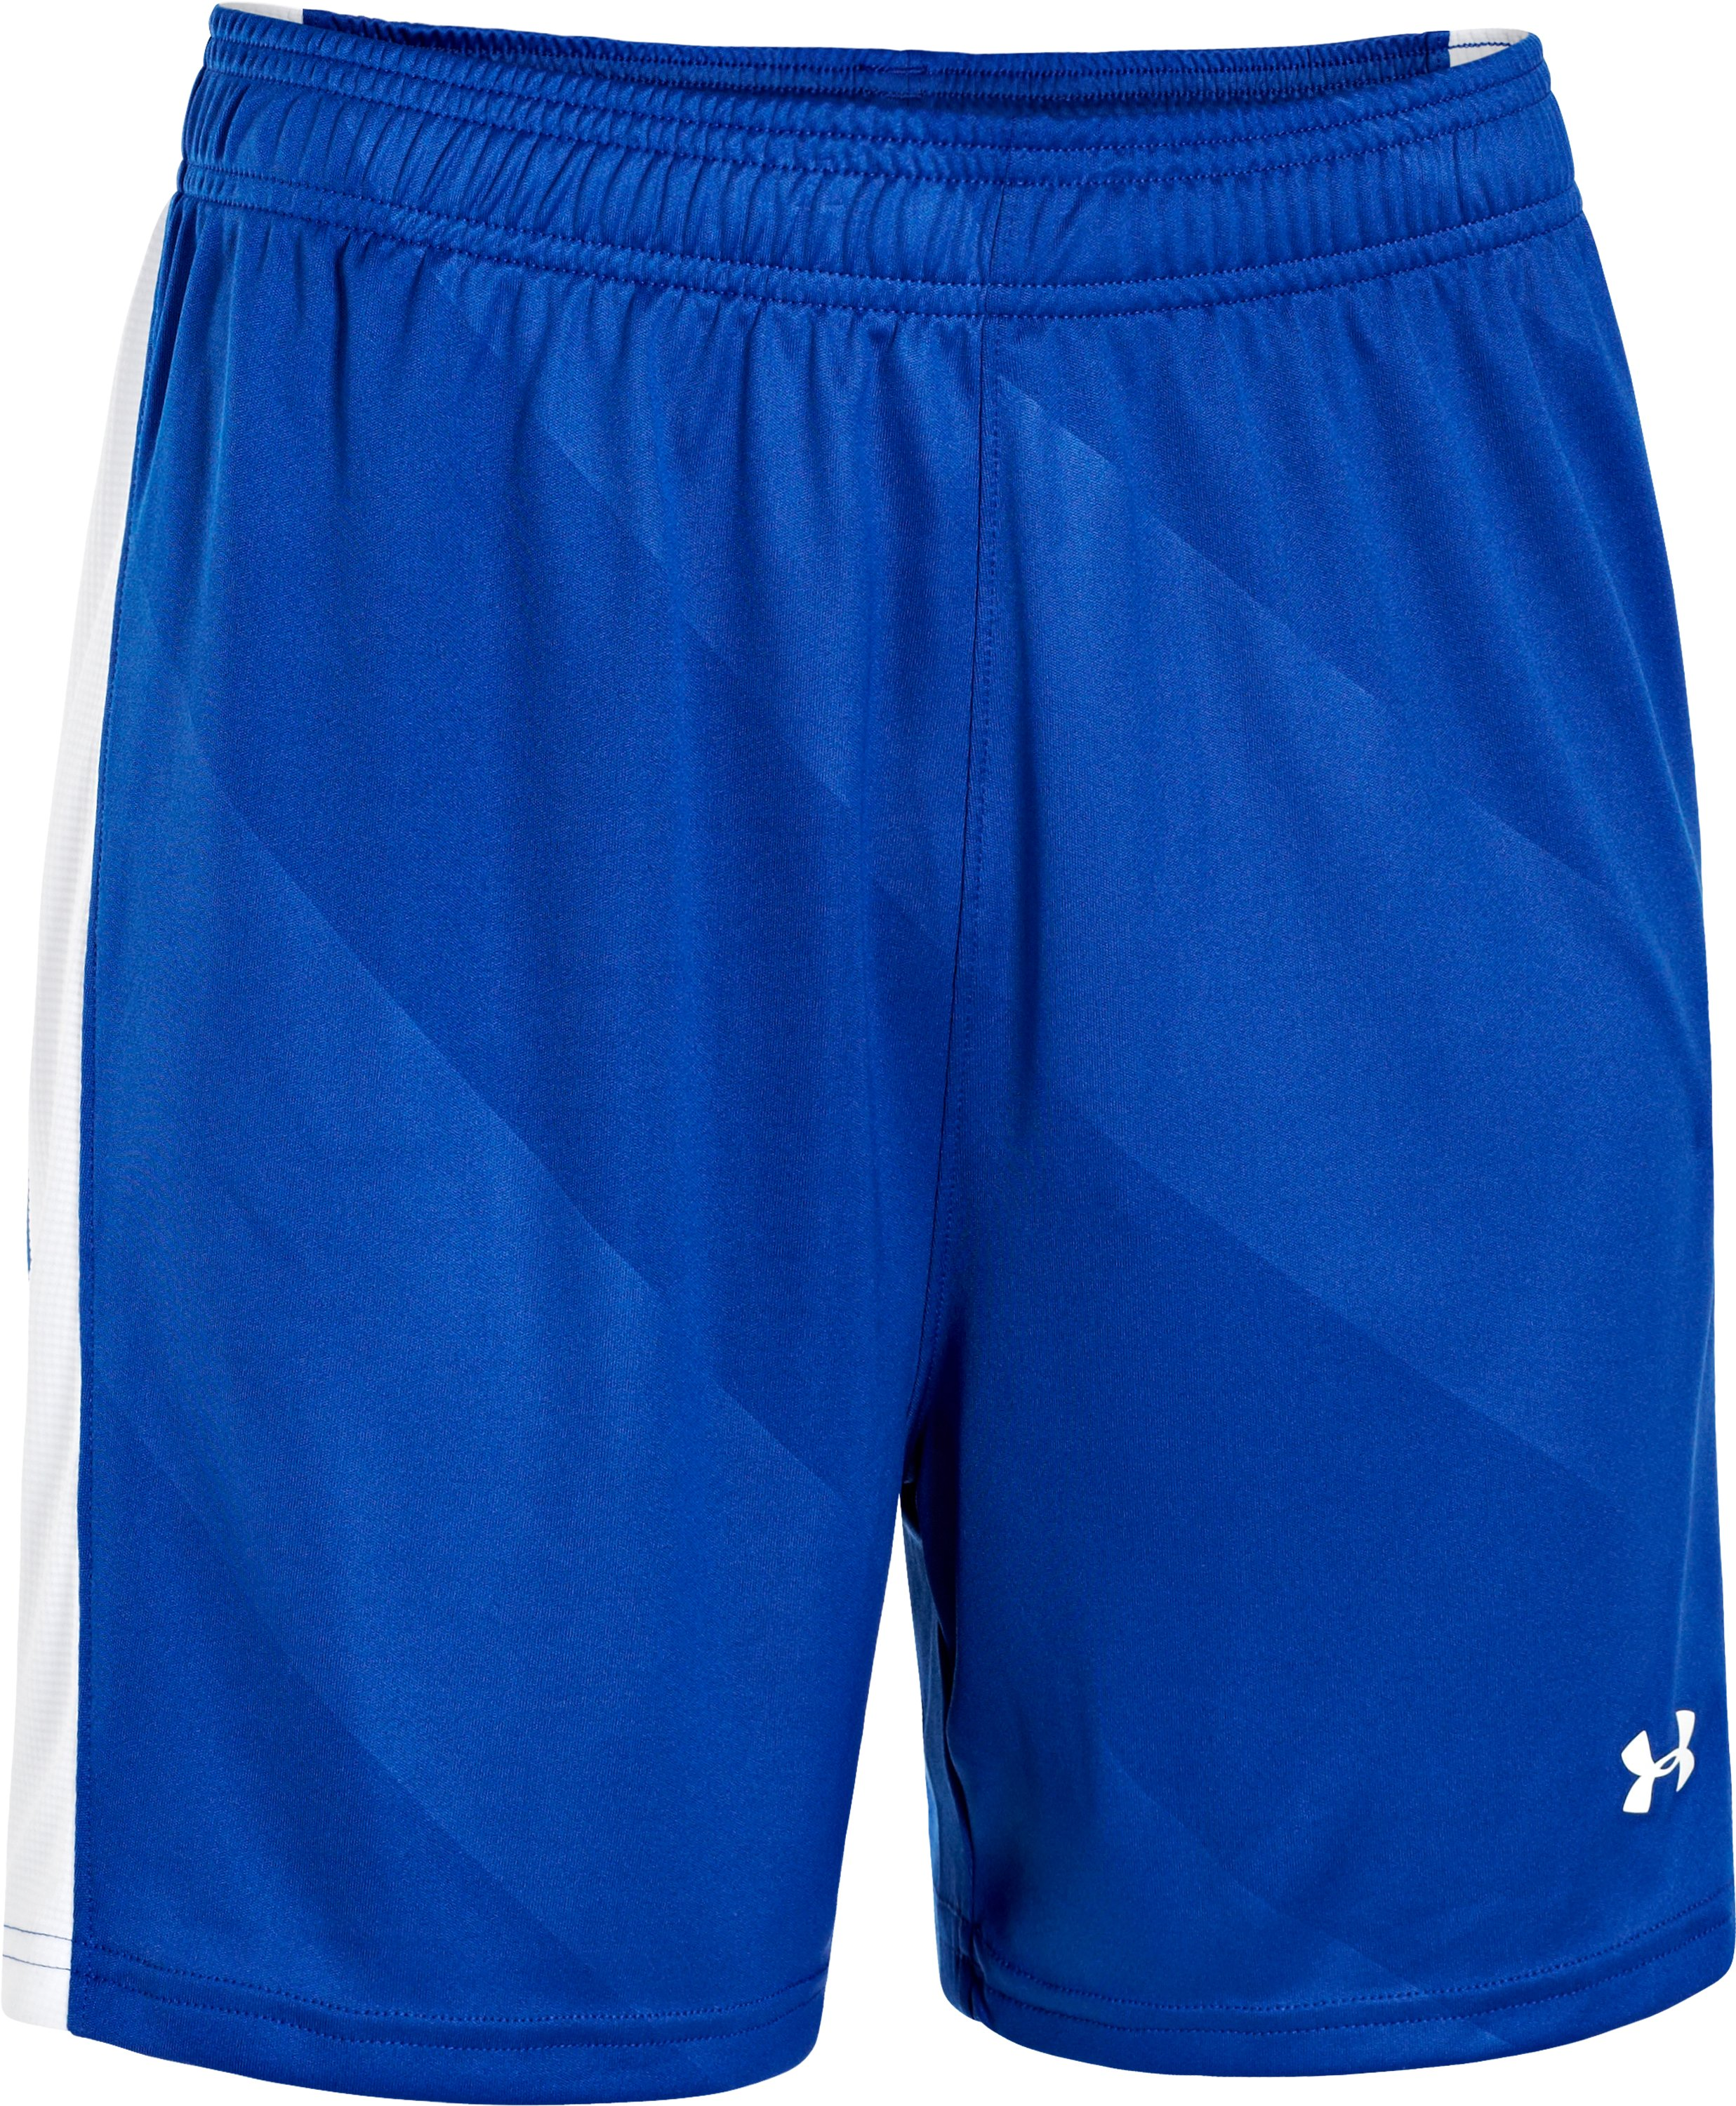 Women's UA Fixture Shorts, Royal